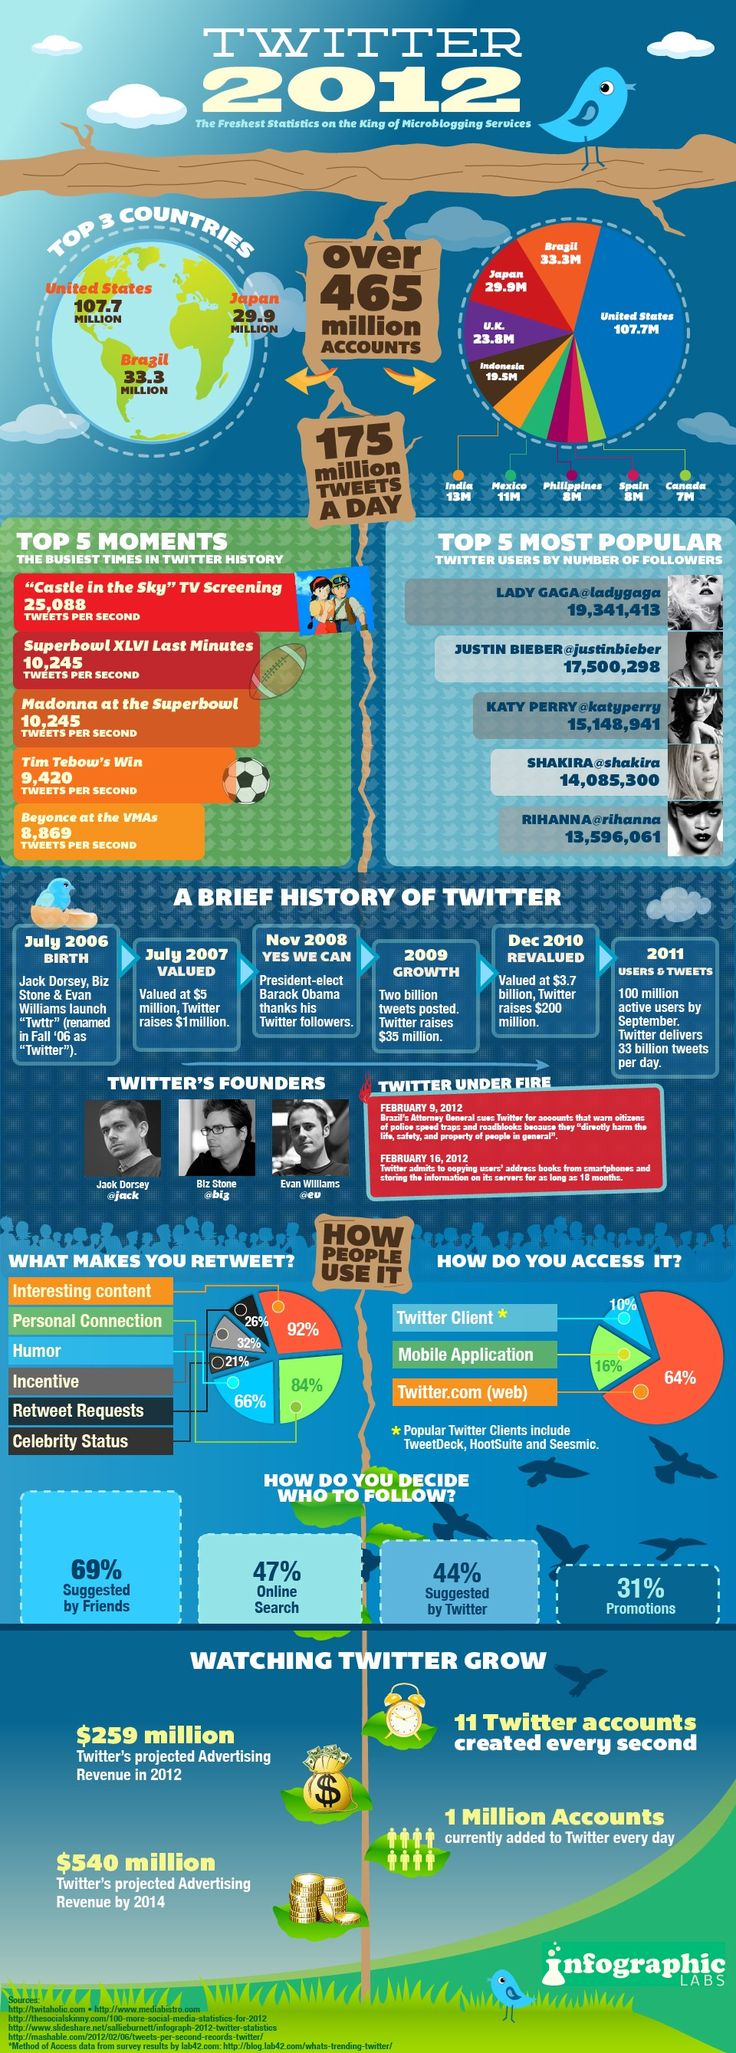 Just How Big Is Twitter In 2012? [INFOGRAPHIC]: Twitter2012, Social Media, Twitter Stat, 2012 Infographic, Twitter Infographic, Media Infographic, De Twitter, Socialmedia, Twitter 2012